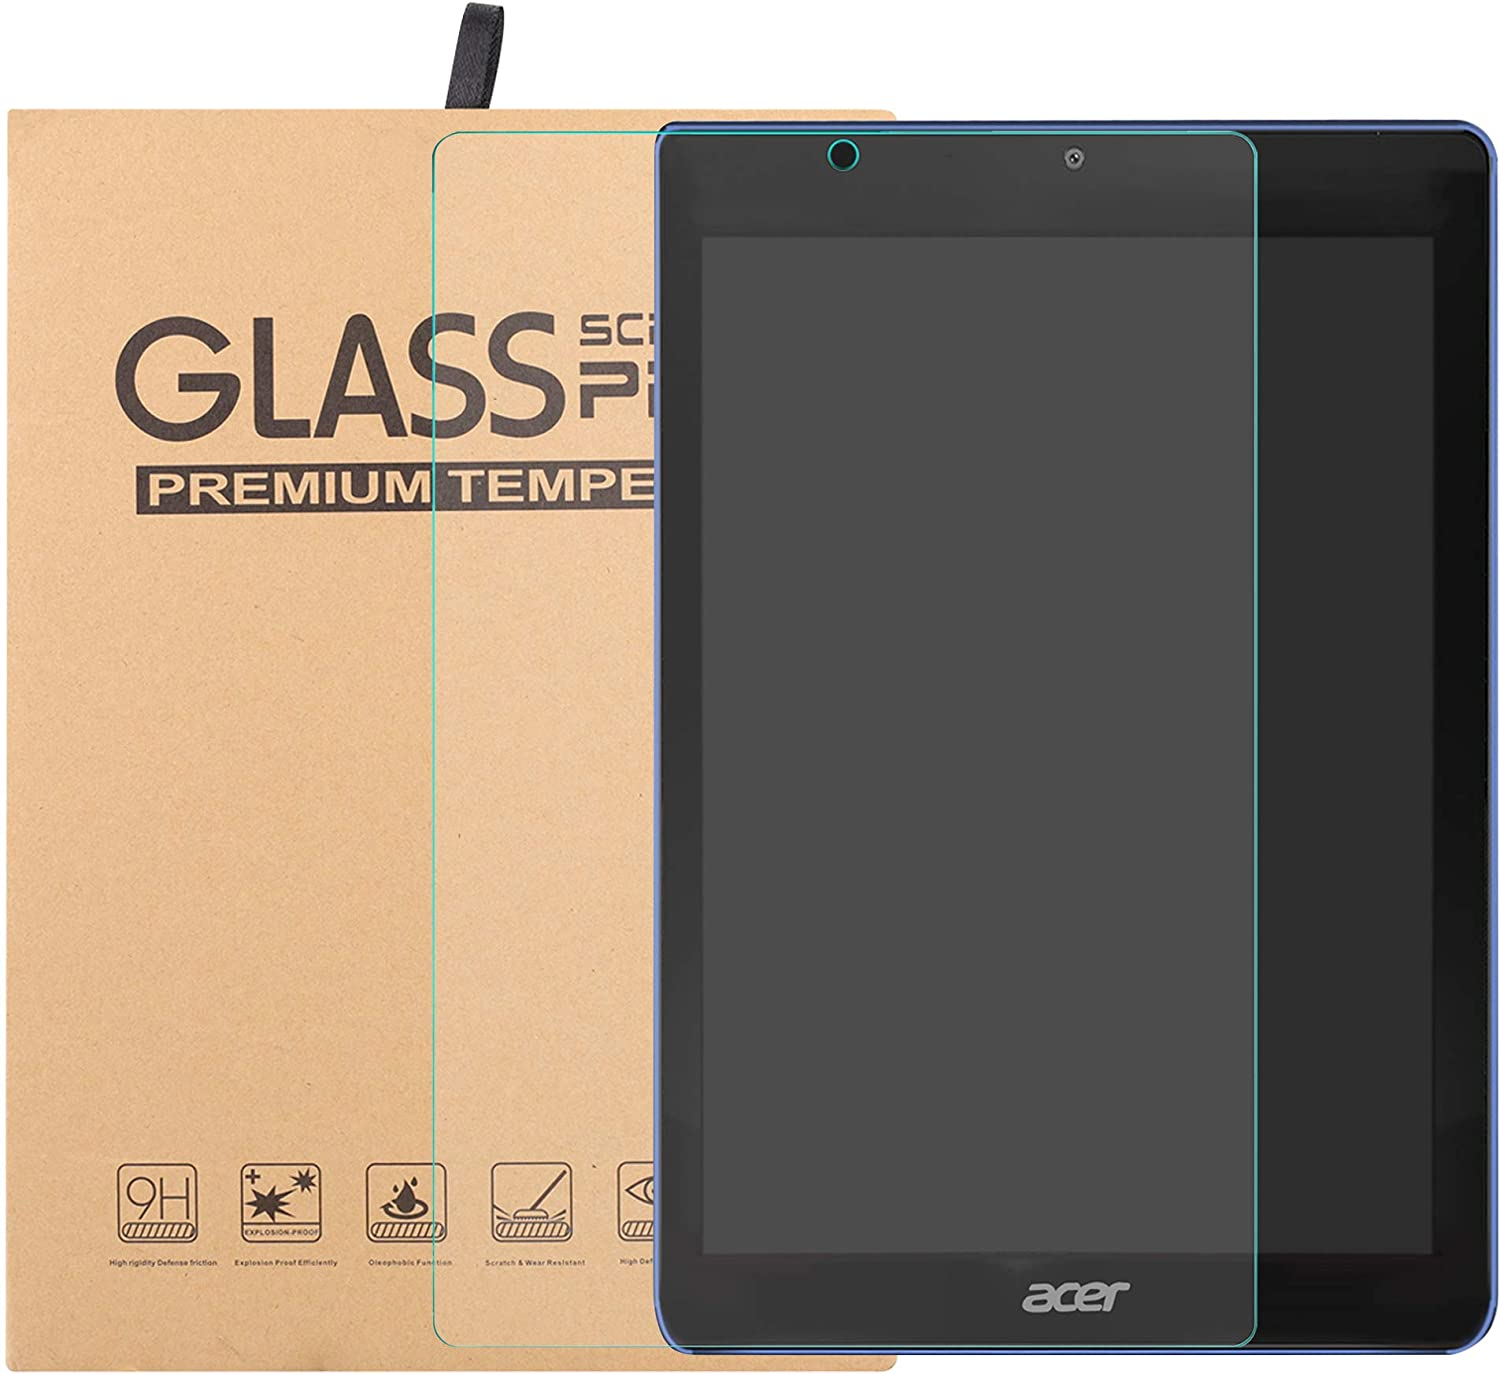 "Acer Iconia One 10 B3-A50 Tempered Glass Screen Protector,Bige HD Clear Scratch-Resistant 9H Hardness Film for 10.1"" Acer Iconia One 10 B3-A50 Tablet (Not fit Acer A3-A50)."